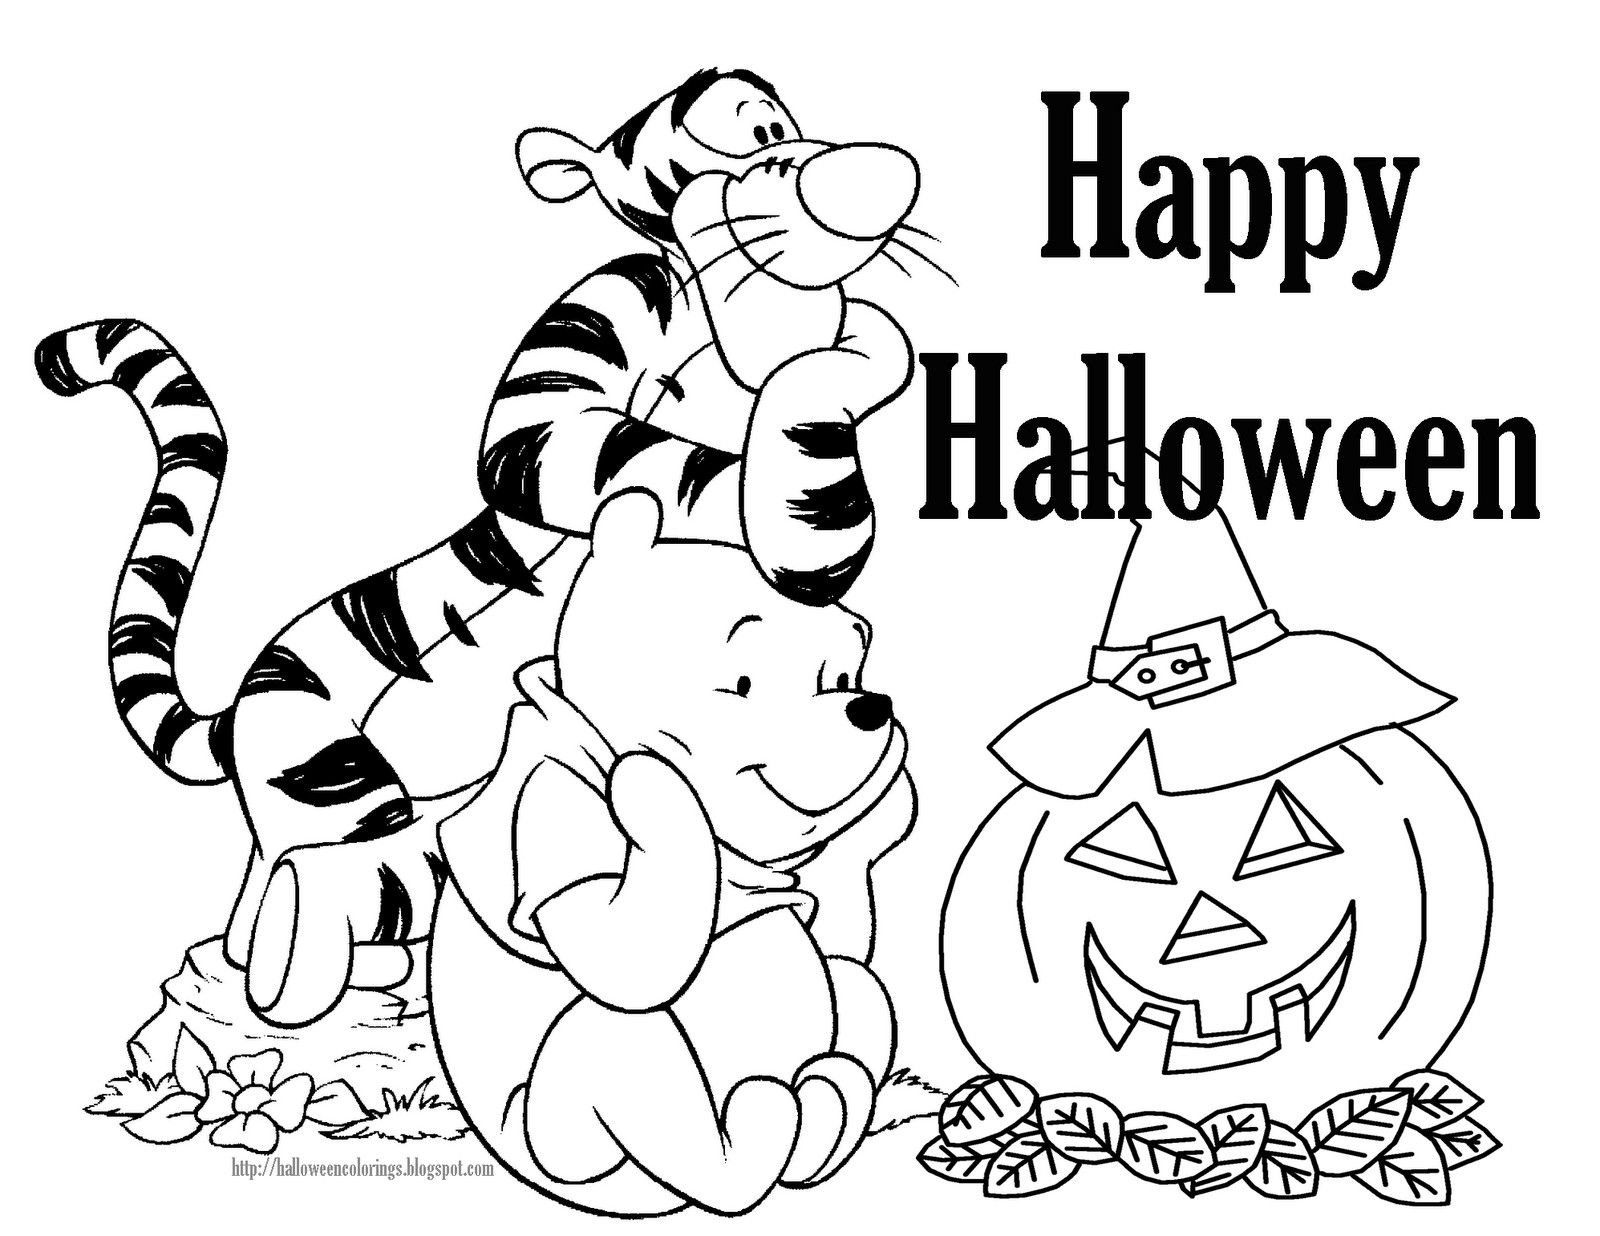 Free Printable Coloring Sheets For Adults Halloween  Halloween Coloring Pages – Free Printable Minnesota Miranda